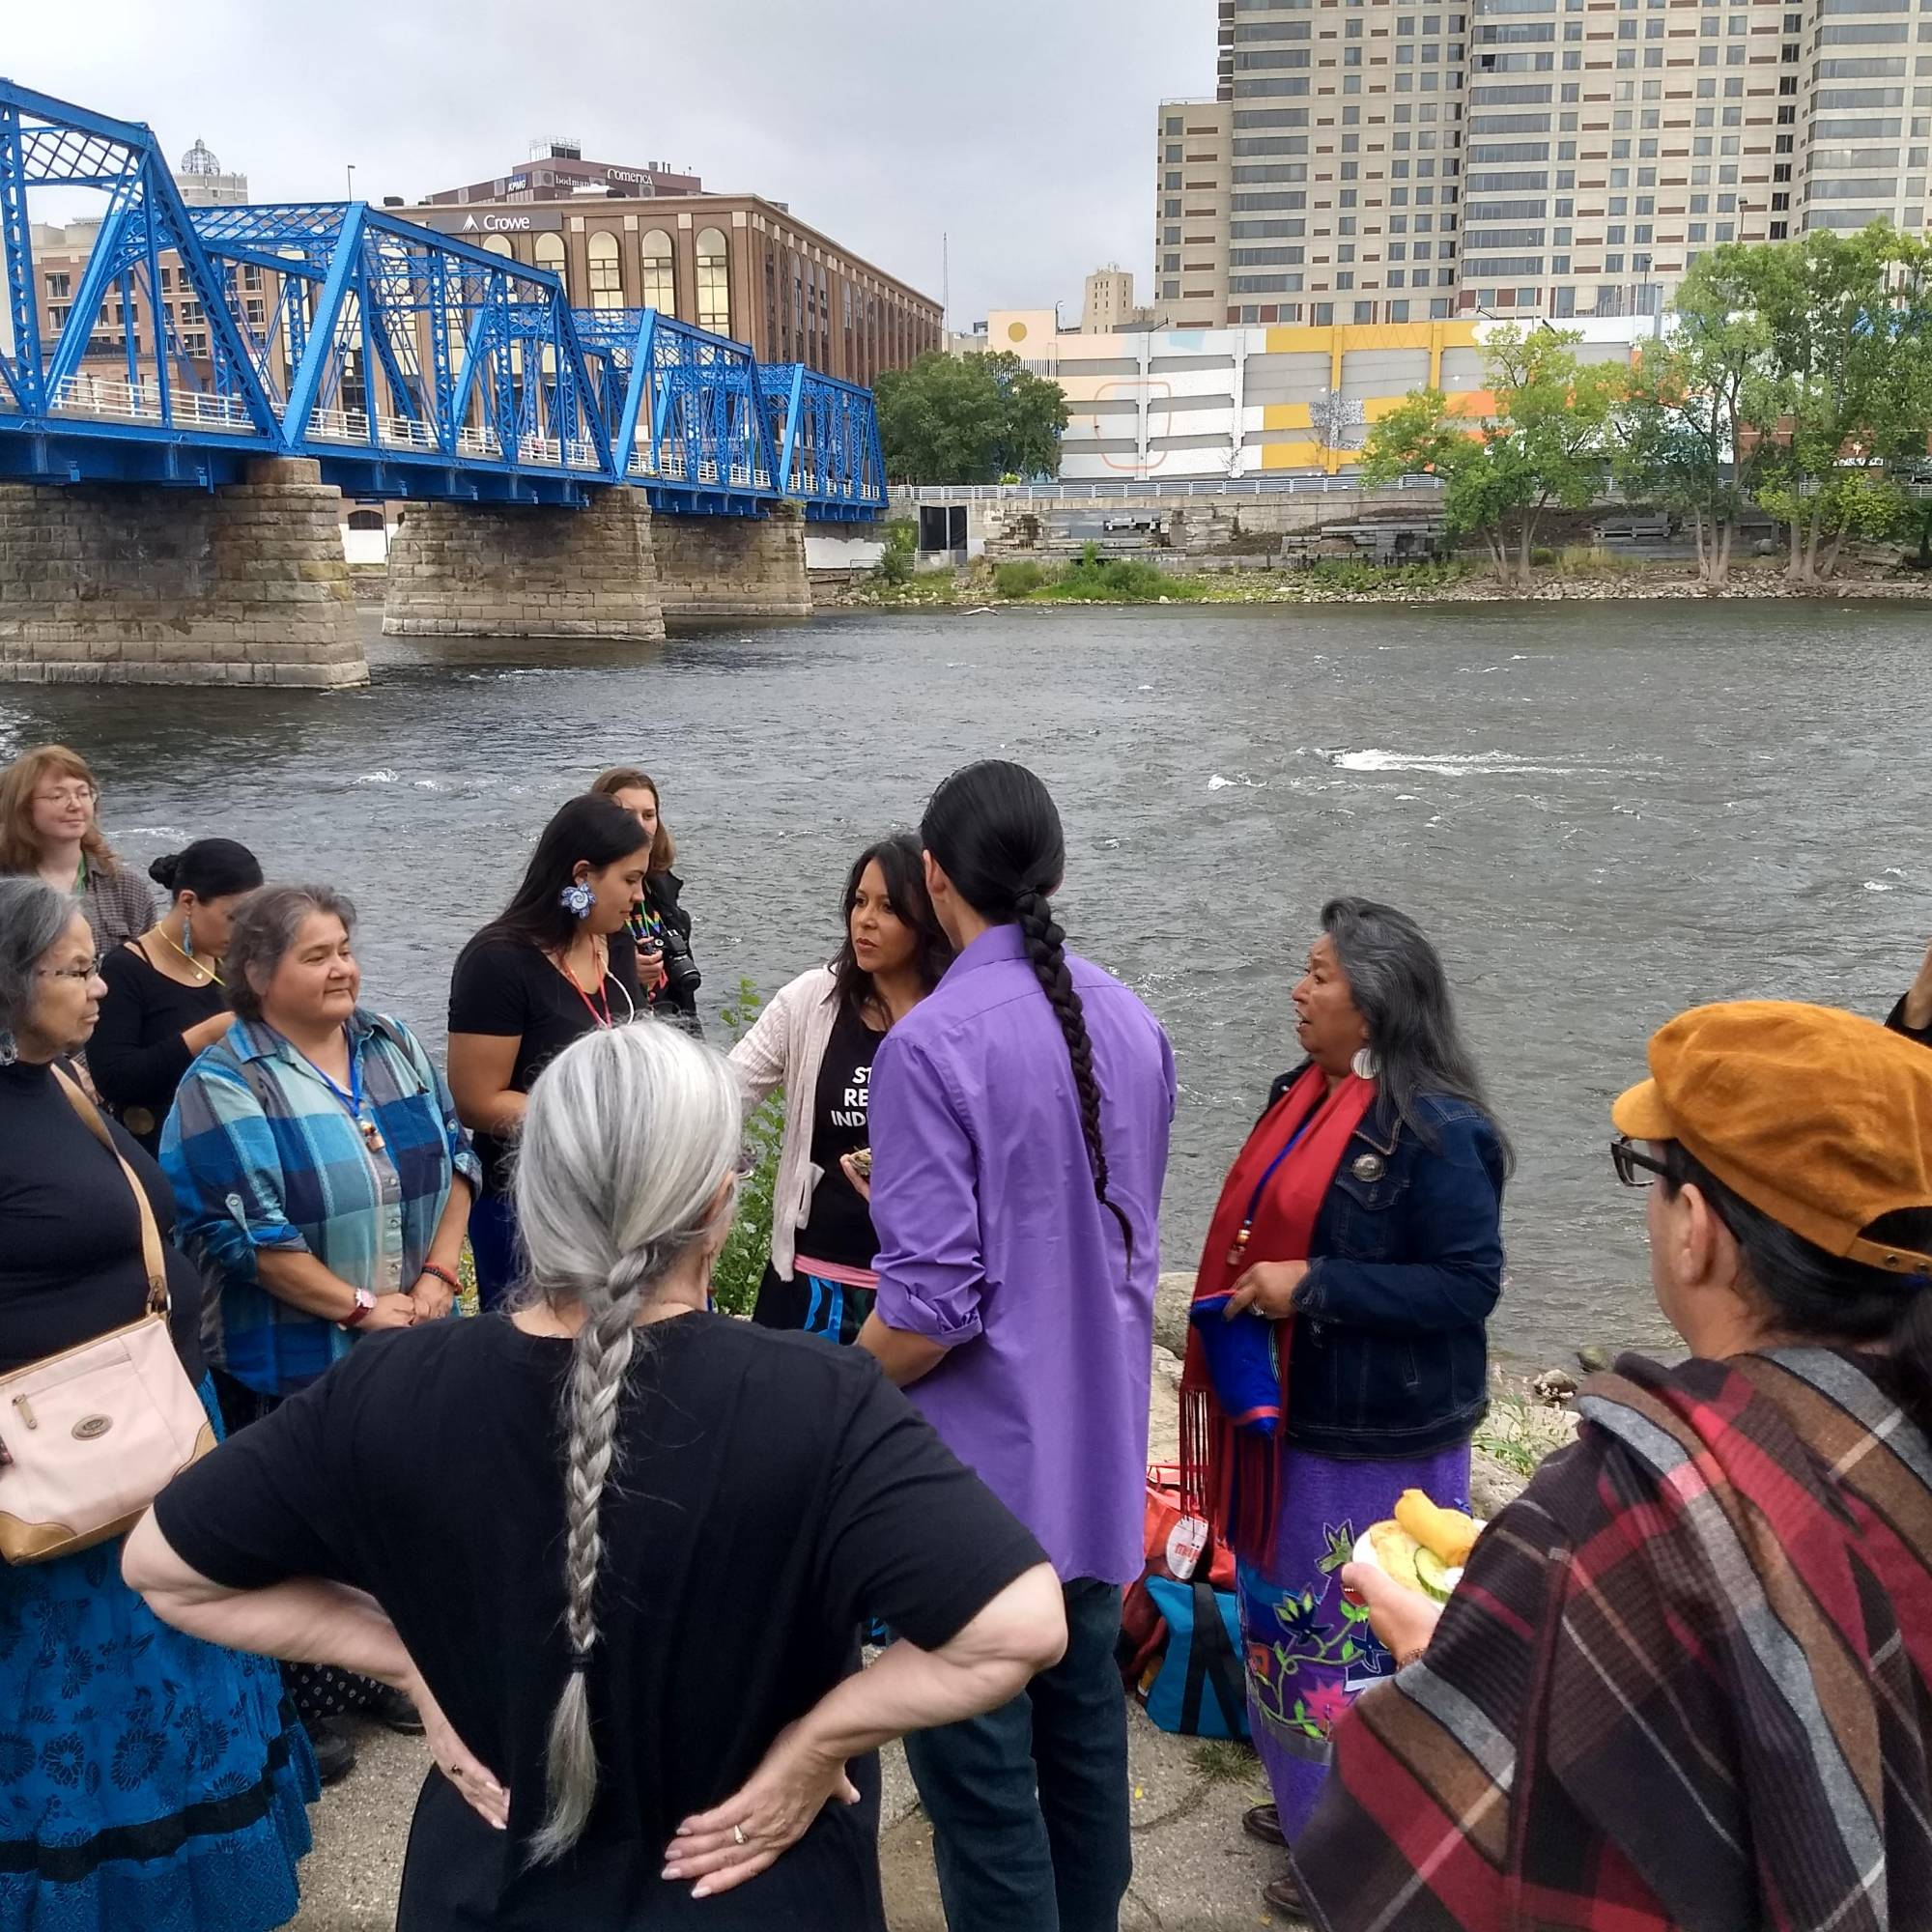 gathering of Native individuals at shore of Grand River in Grand Rapids, MI